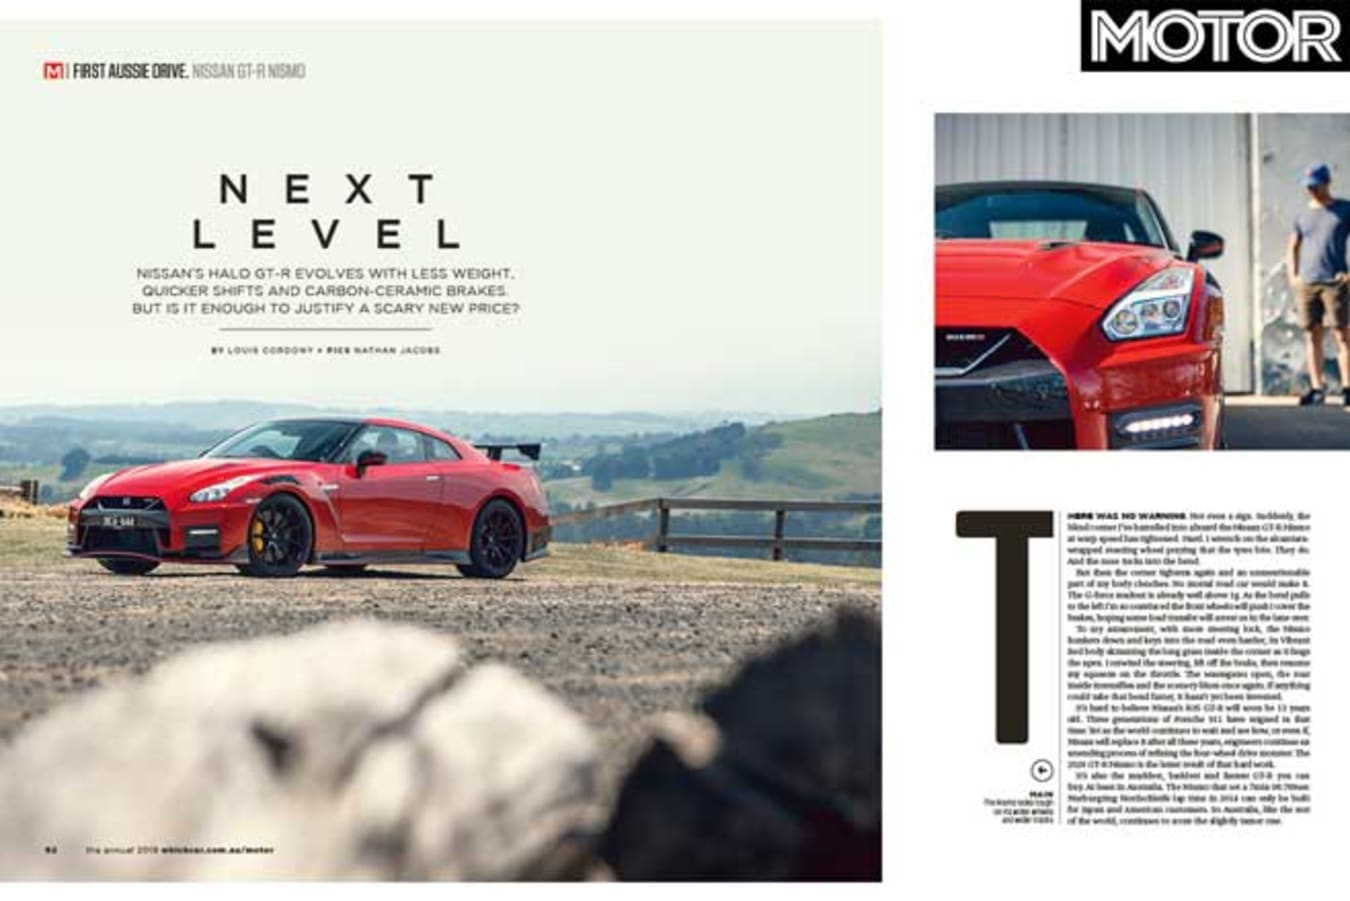 MOTOR Magazine Annual 2019 Issue 2020 Nissan GT R NISMO Review Jpg